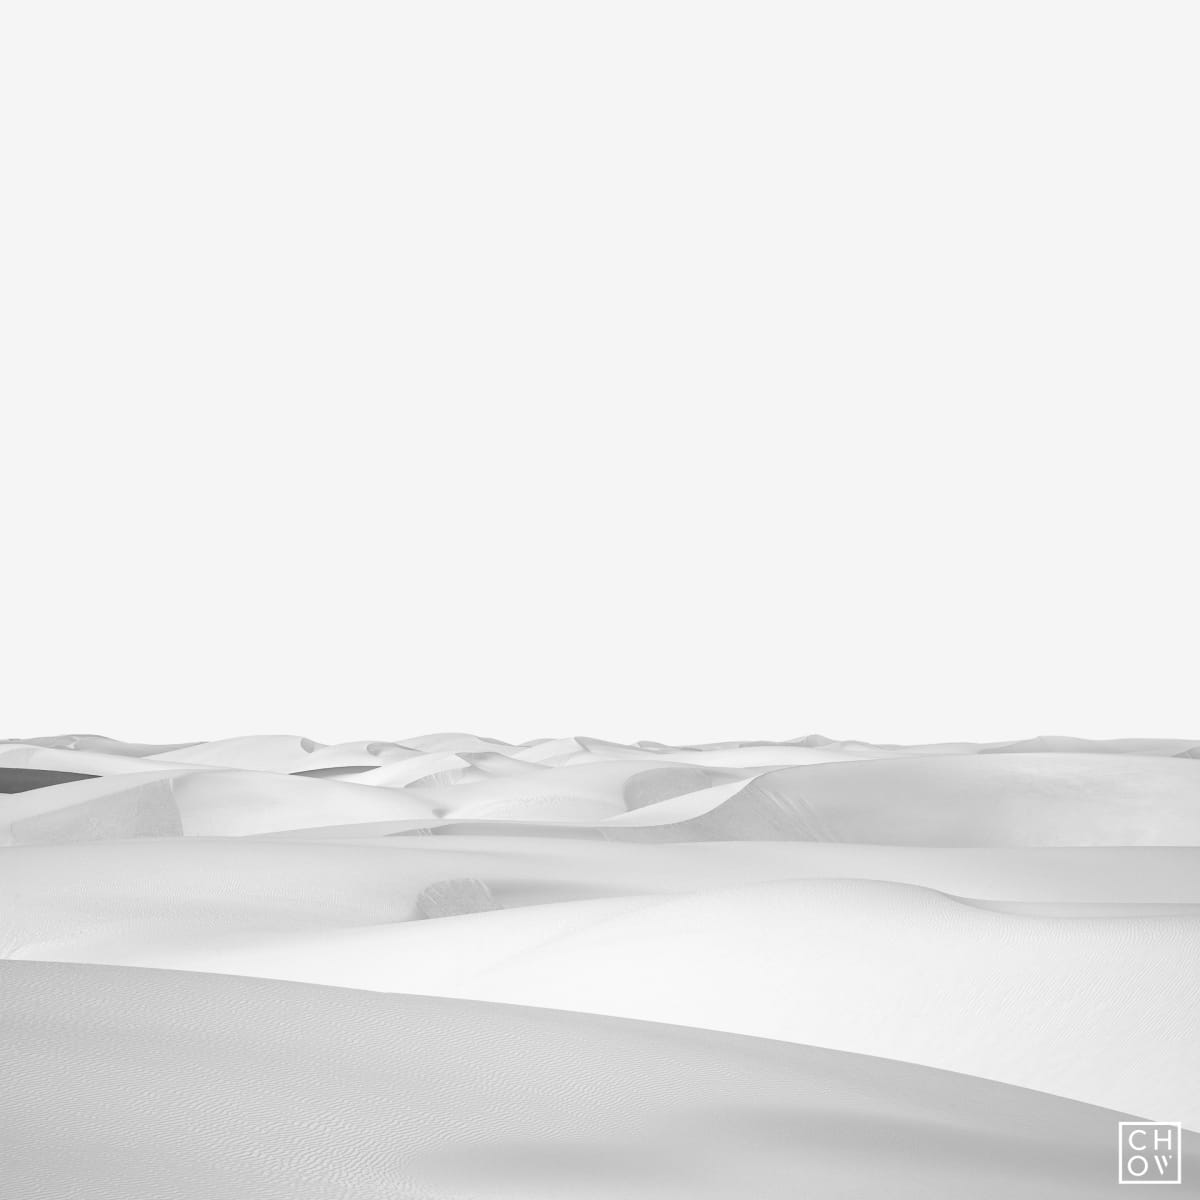 Austin Chow, White Sands // New Mexico, 2018